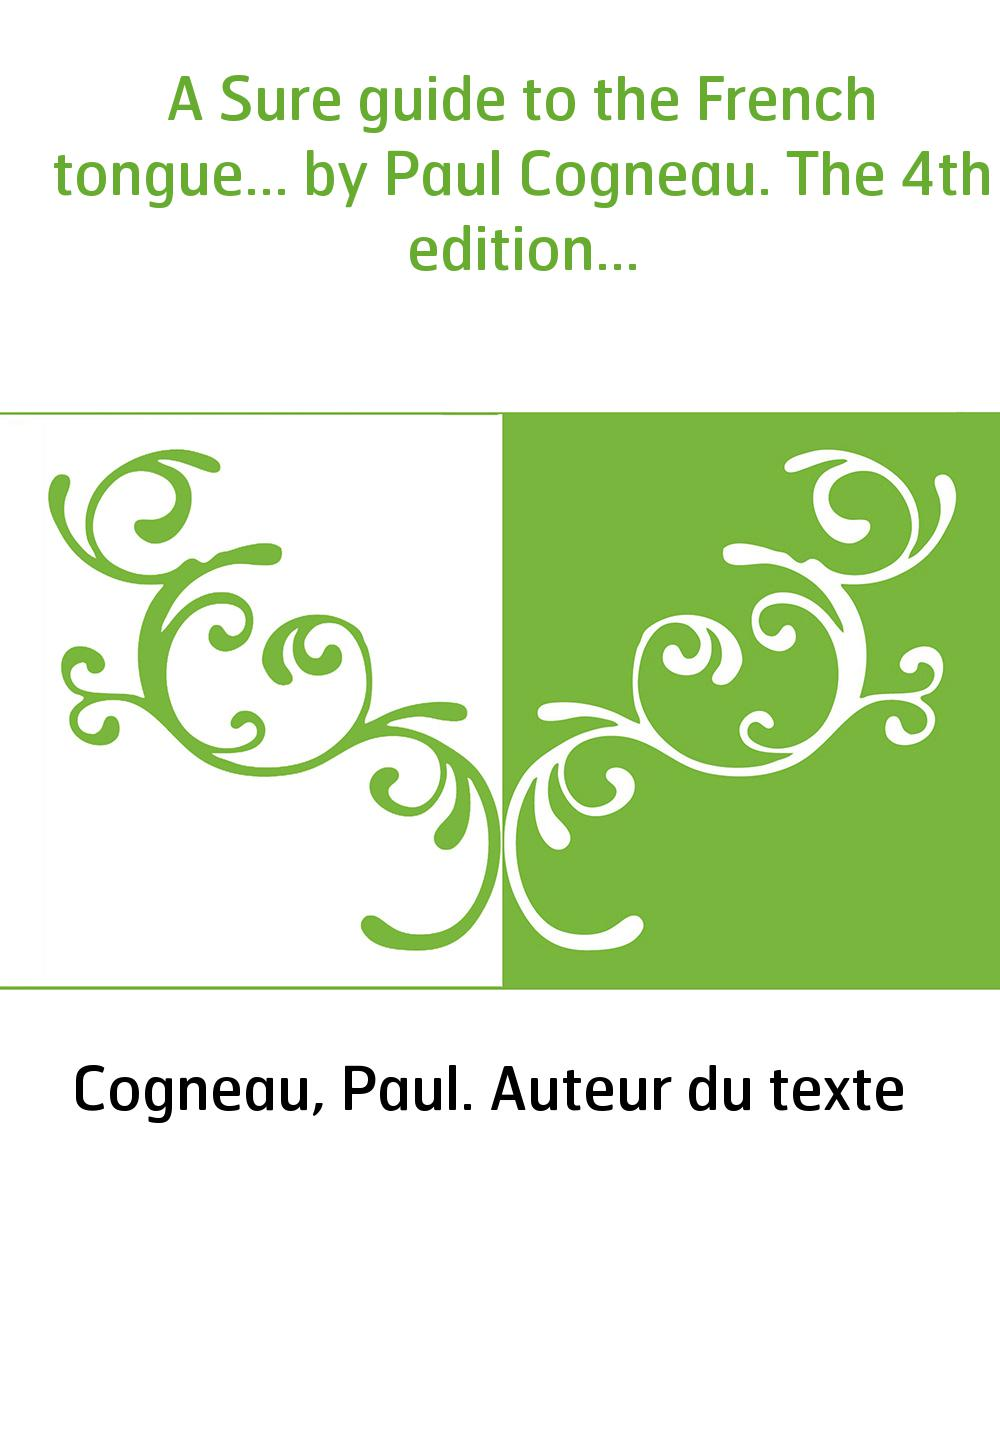 A Sure guide to the French tongue... by Paul Cogneau. The 4th edition...